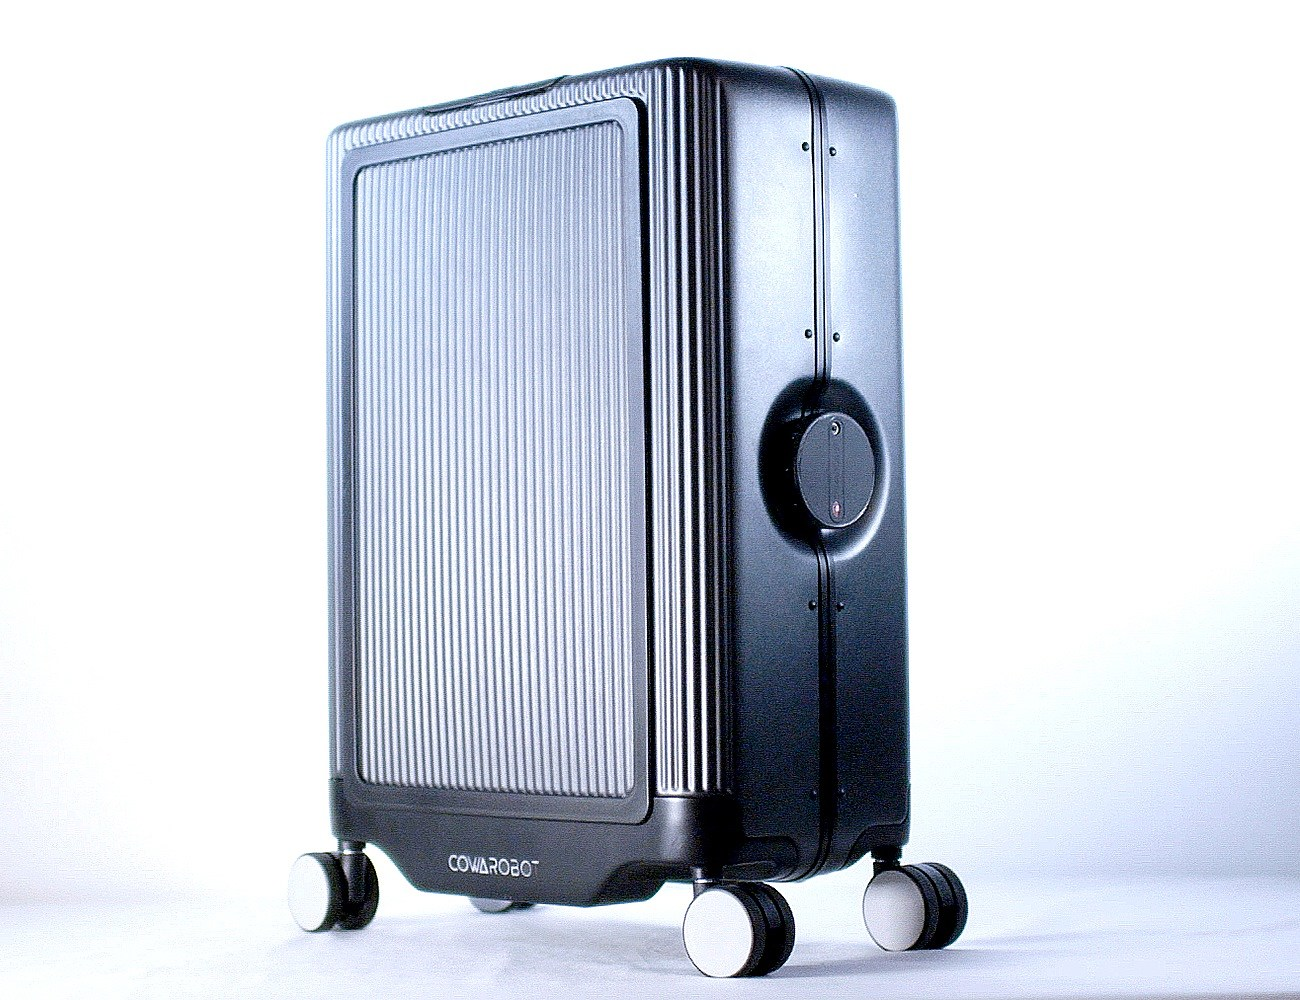 Auto-Follow Suitcase Makes Your Travel Easier – COWAROBOT R1